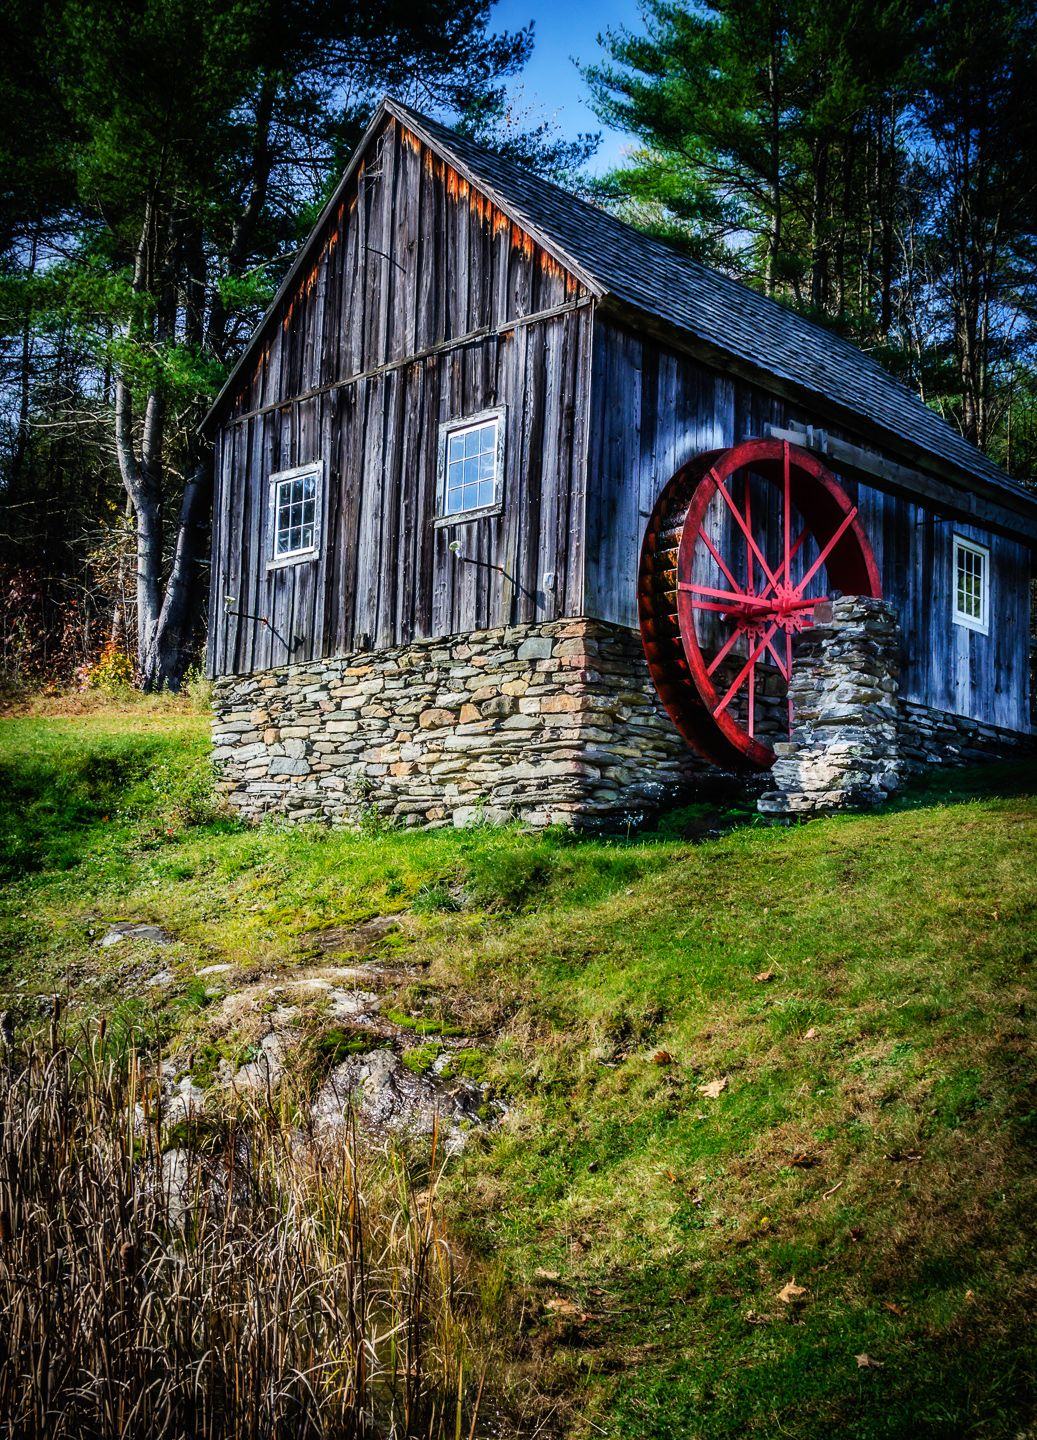 New England Fall Foliage Wallpaper Mike In 2019 Old Water Mills Old Grist Mill Water